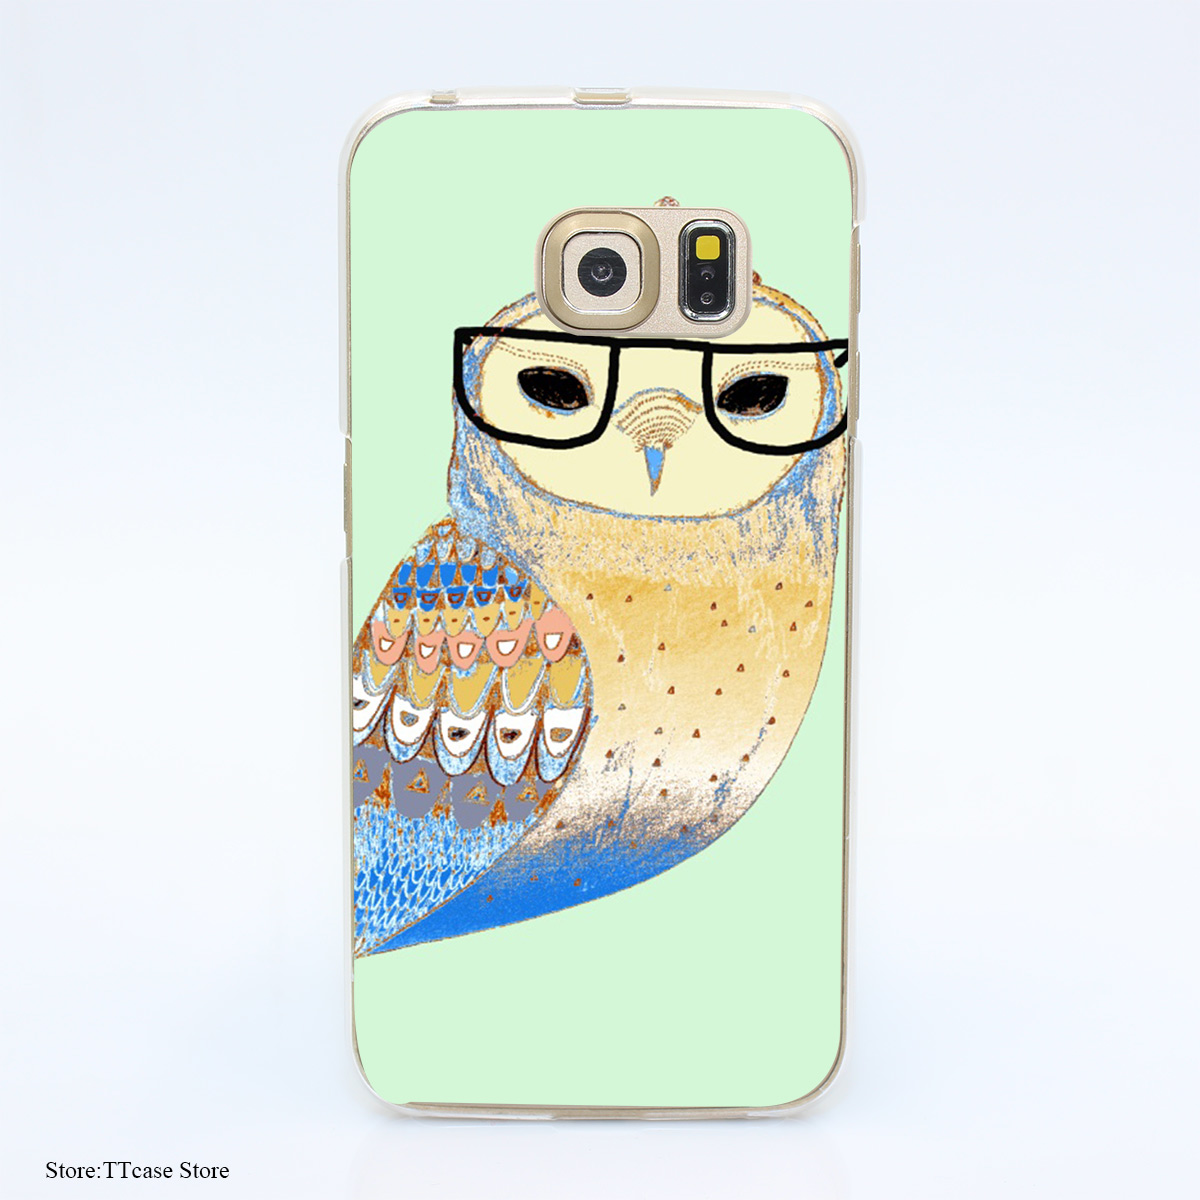 3058G Snowy Owl H4a Print Hard Transparent Case Cover for Galaxy S3 S4 S5 & Mini S6 S7 & edge